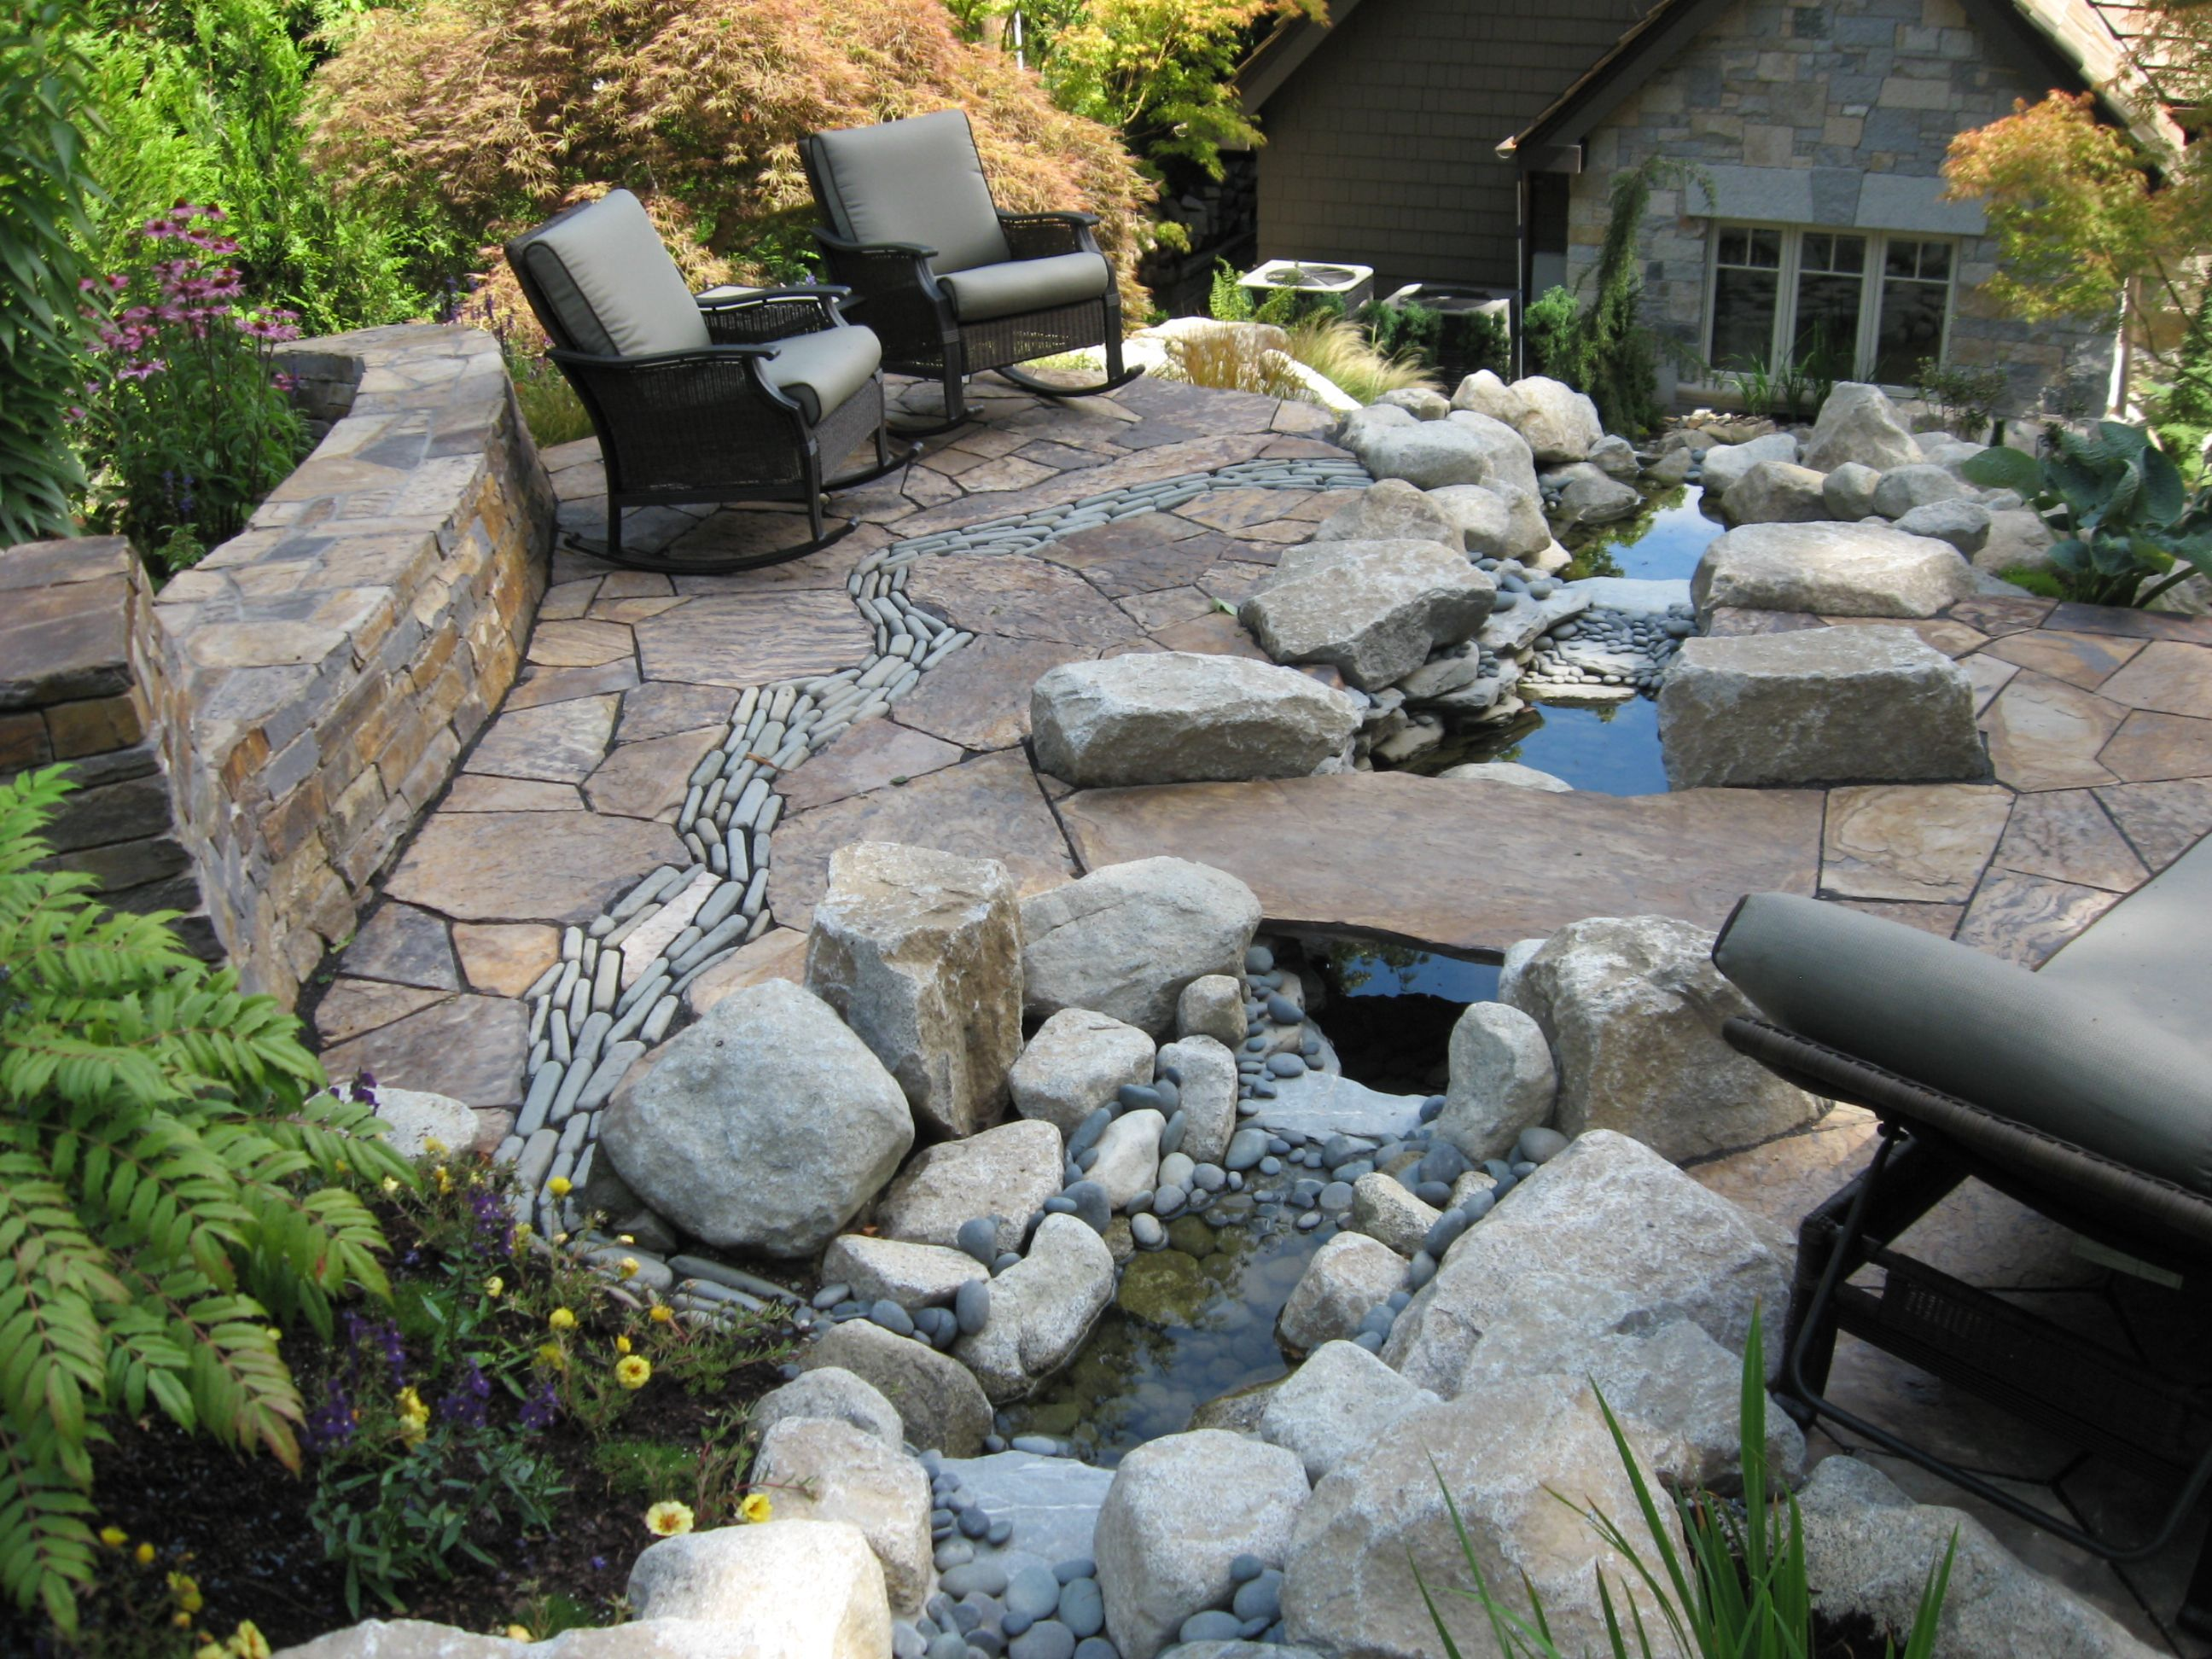 Stone Patio Design Ideas outdoor stone patio designs stone patio design ideas Small Mexican Concrete House Before And After River Stone Patio Design Ideas And Curved